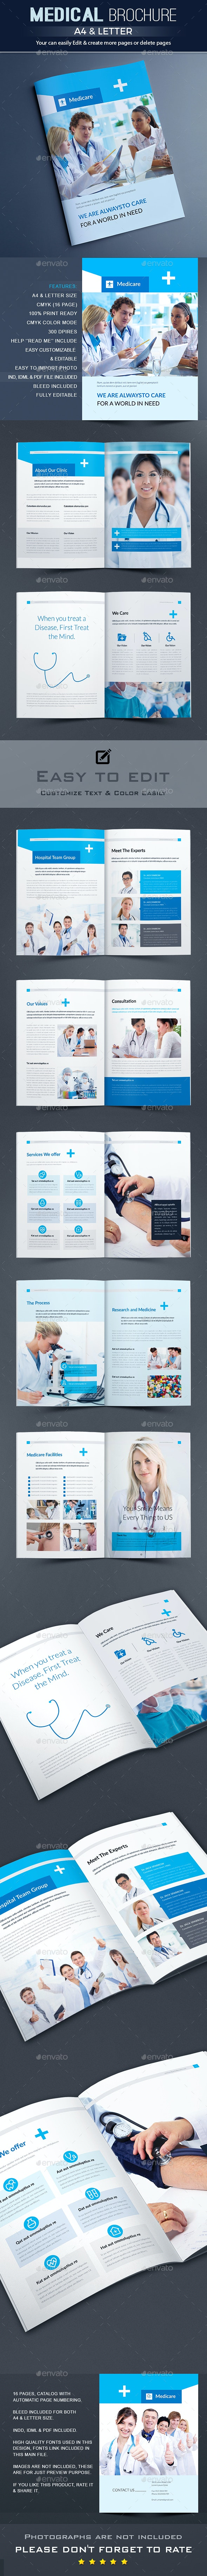 Medical Brochure - Brochures Print Templates